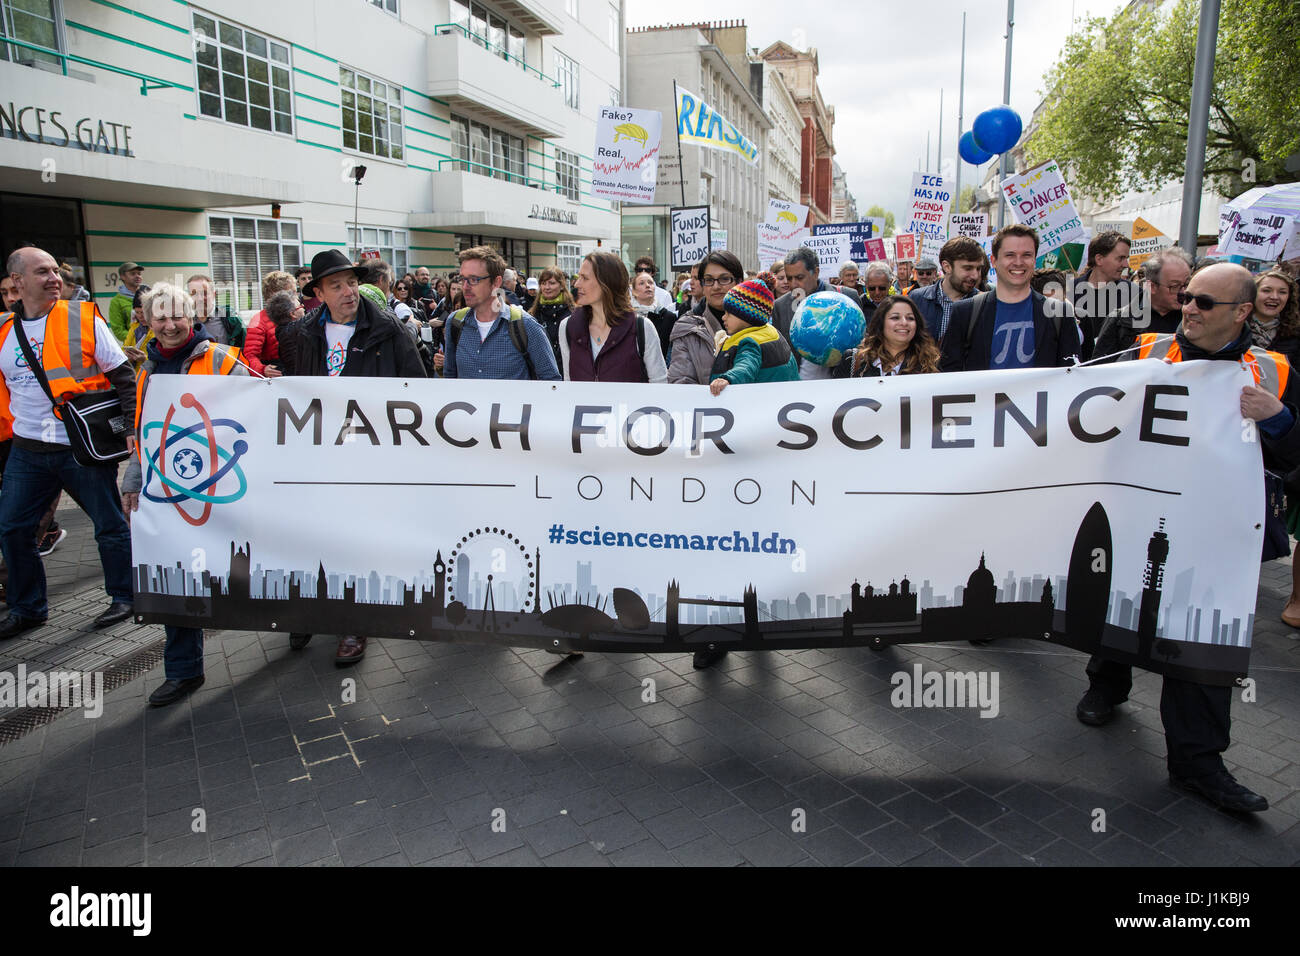 London, UK. 22nd Apr, 2017. Scientists march through central London on the 'March for Science' as part of a global Stock Photo